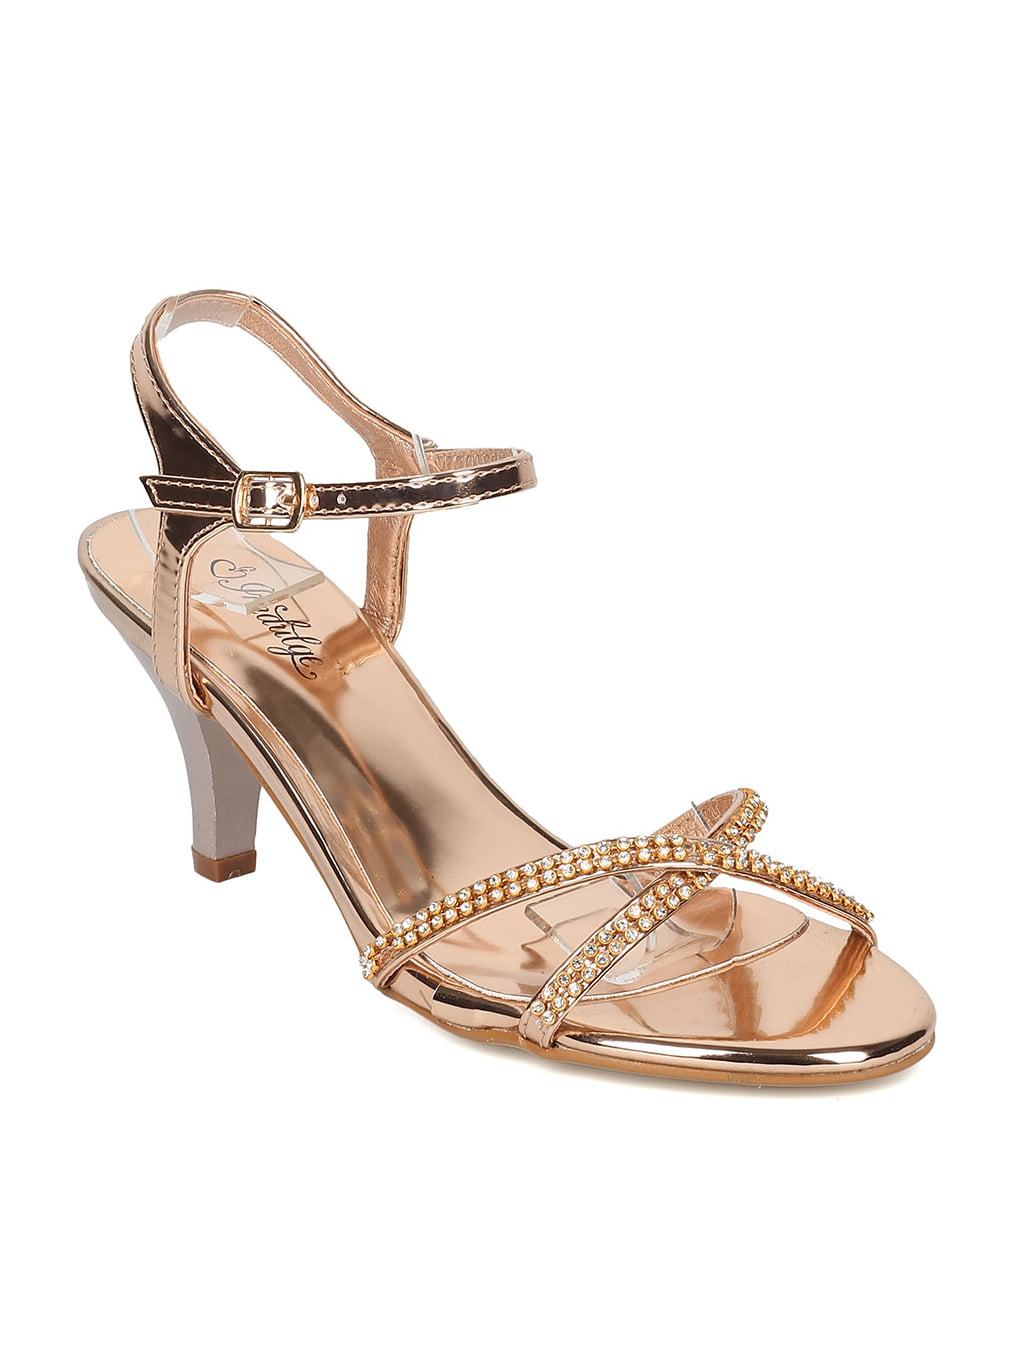 Gold Small Heels